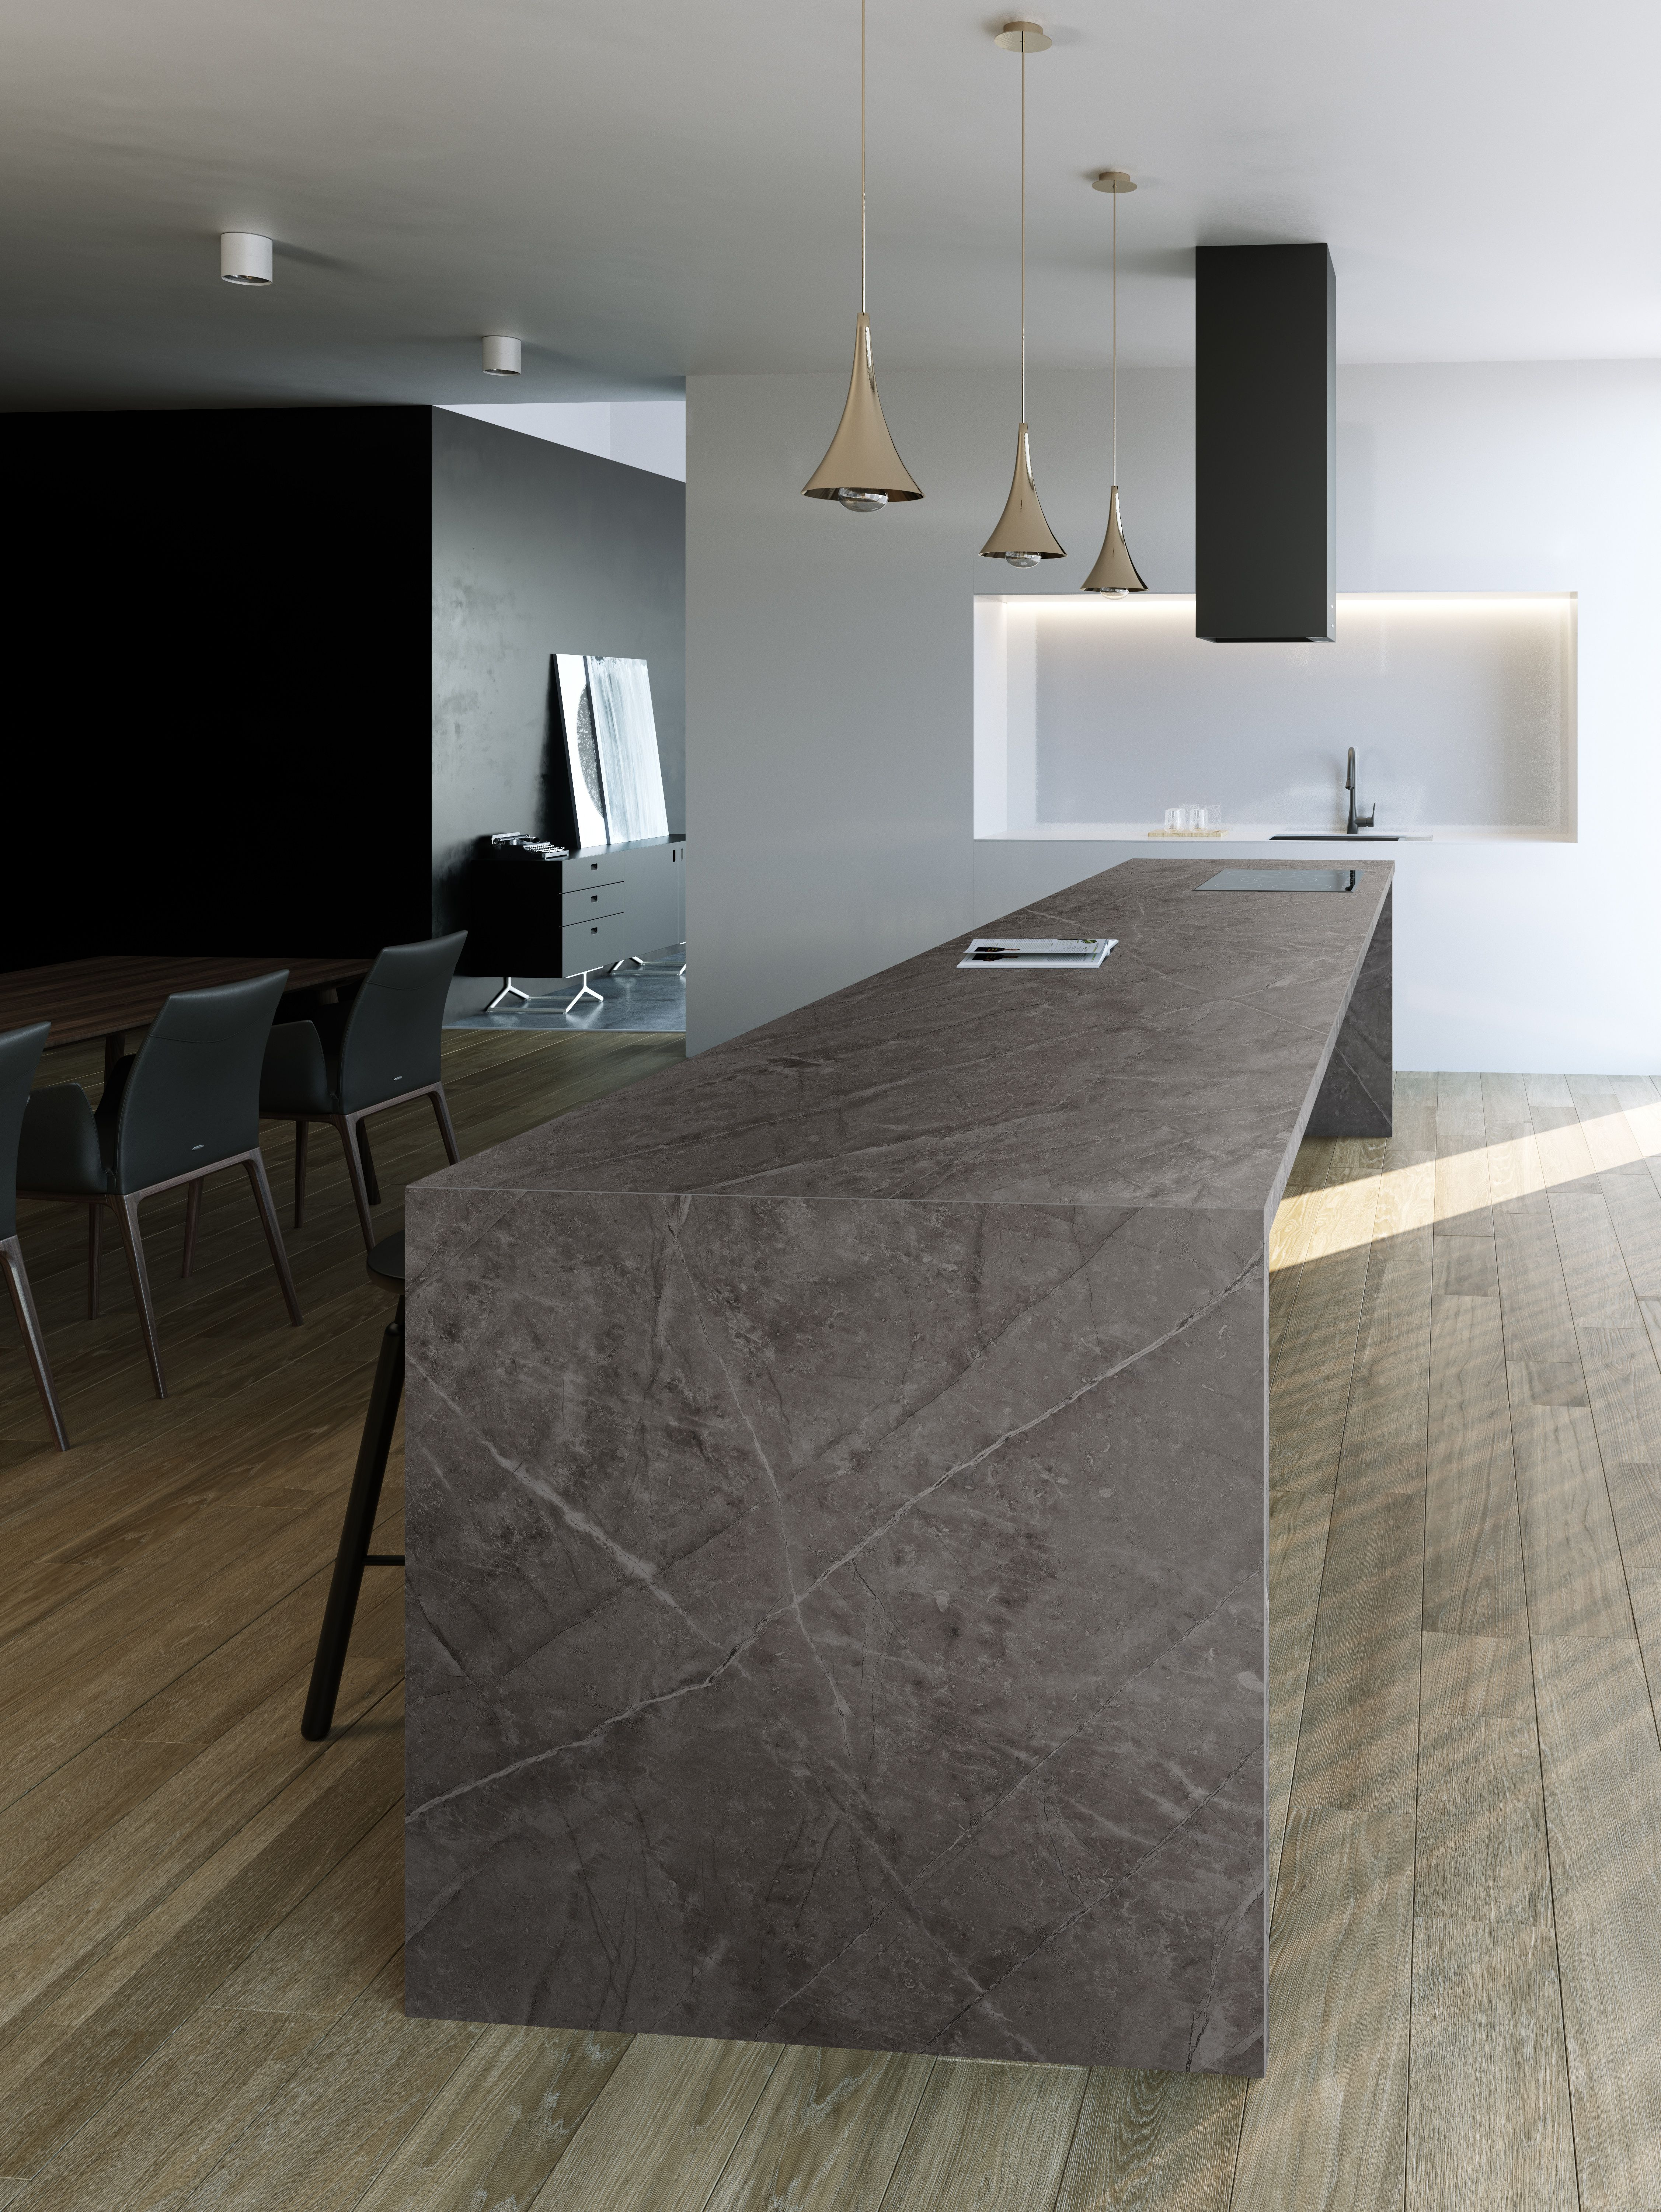 Stenen Keuken Dekton Kira Kitchen In 2019 Worktop Designs Kitchen Design En